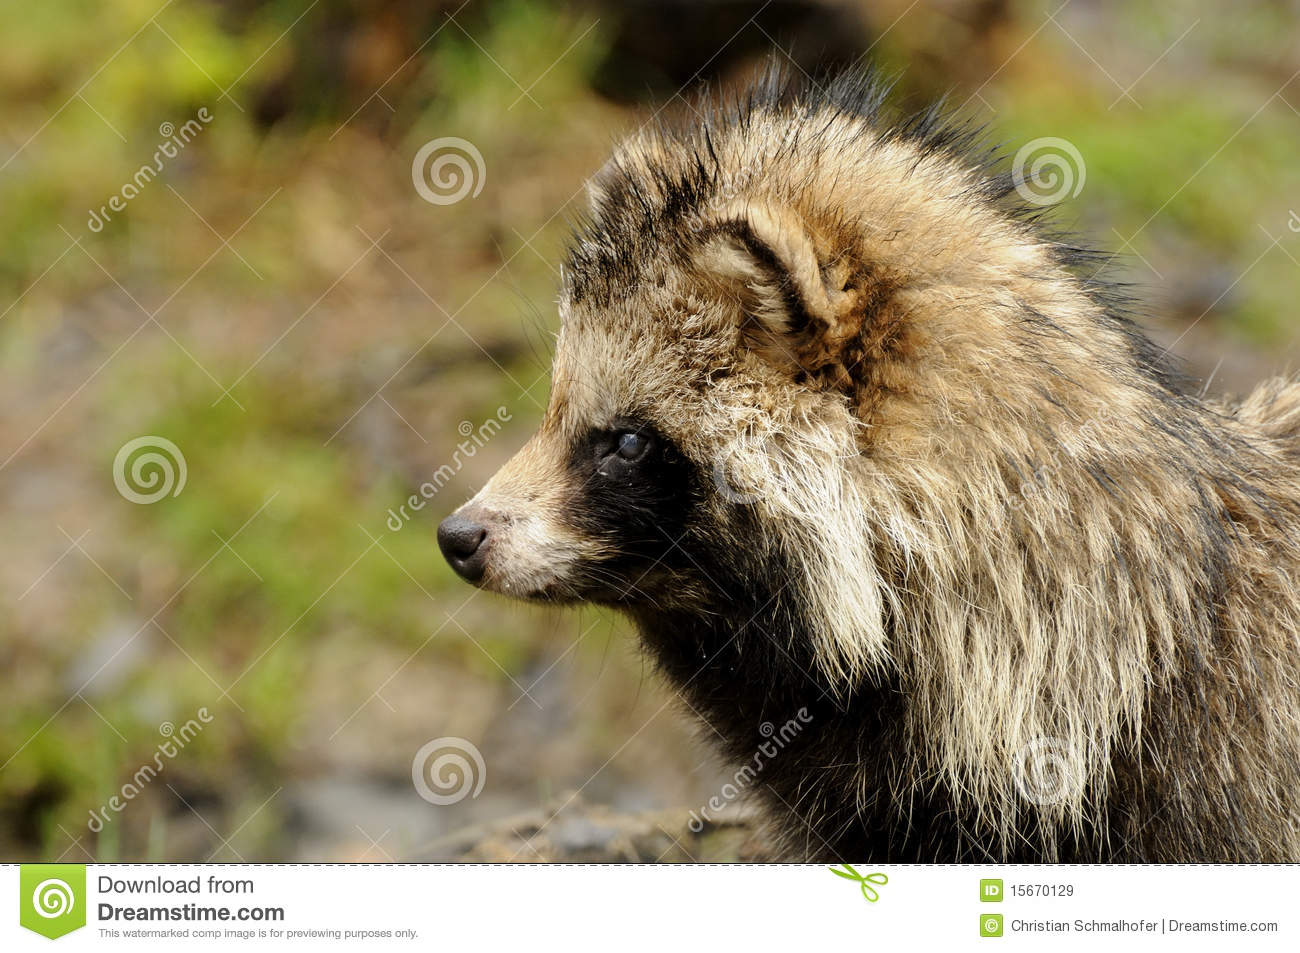 Raccoon Dog (Nyctereutes Procyonoides) Royalty Free Stock Images.